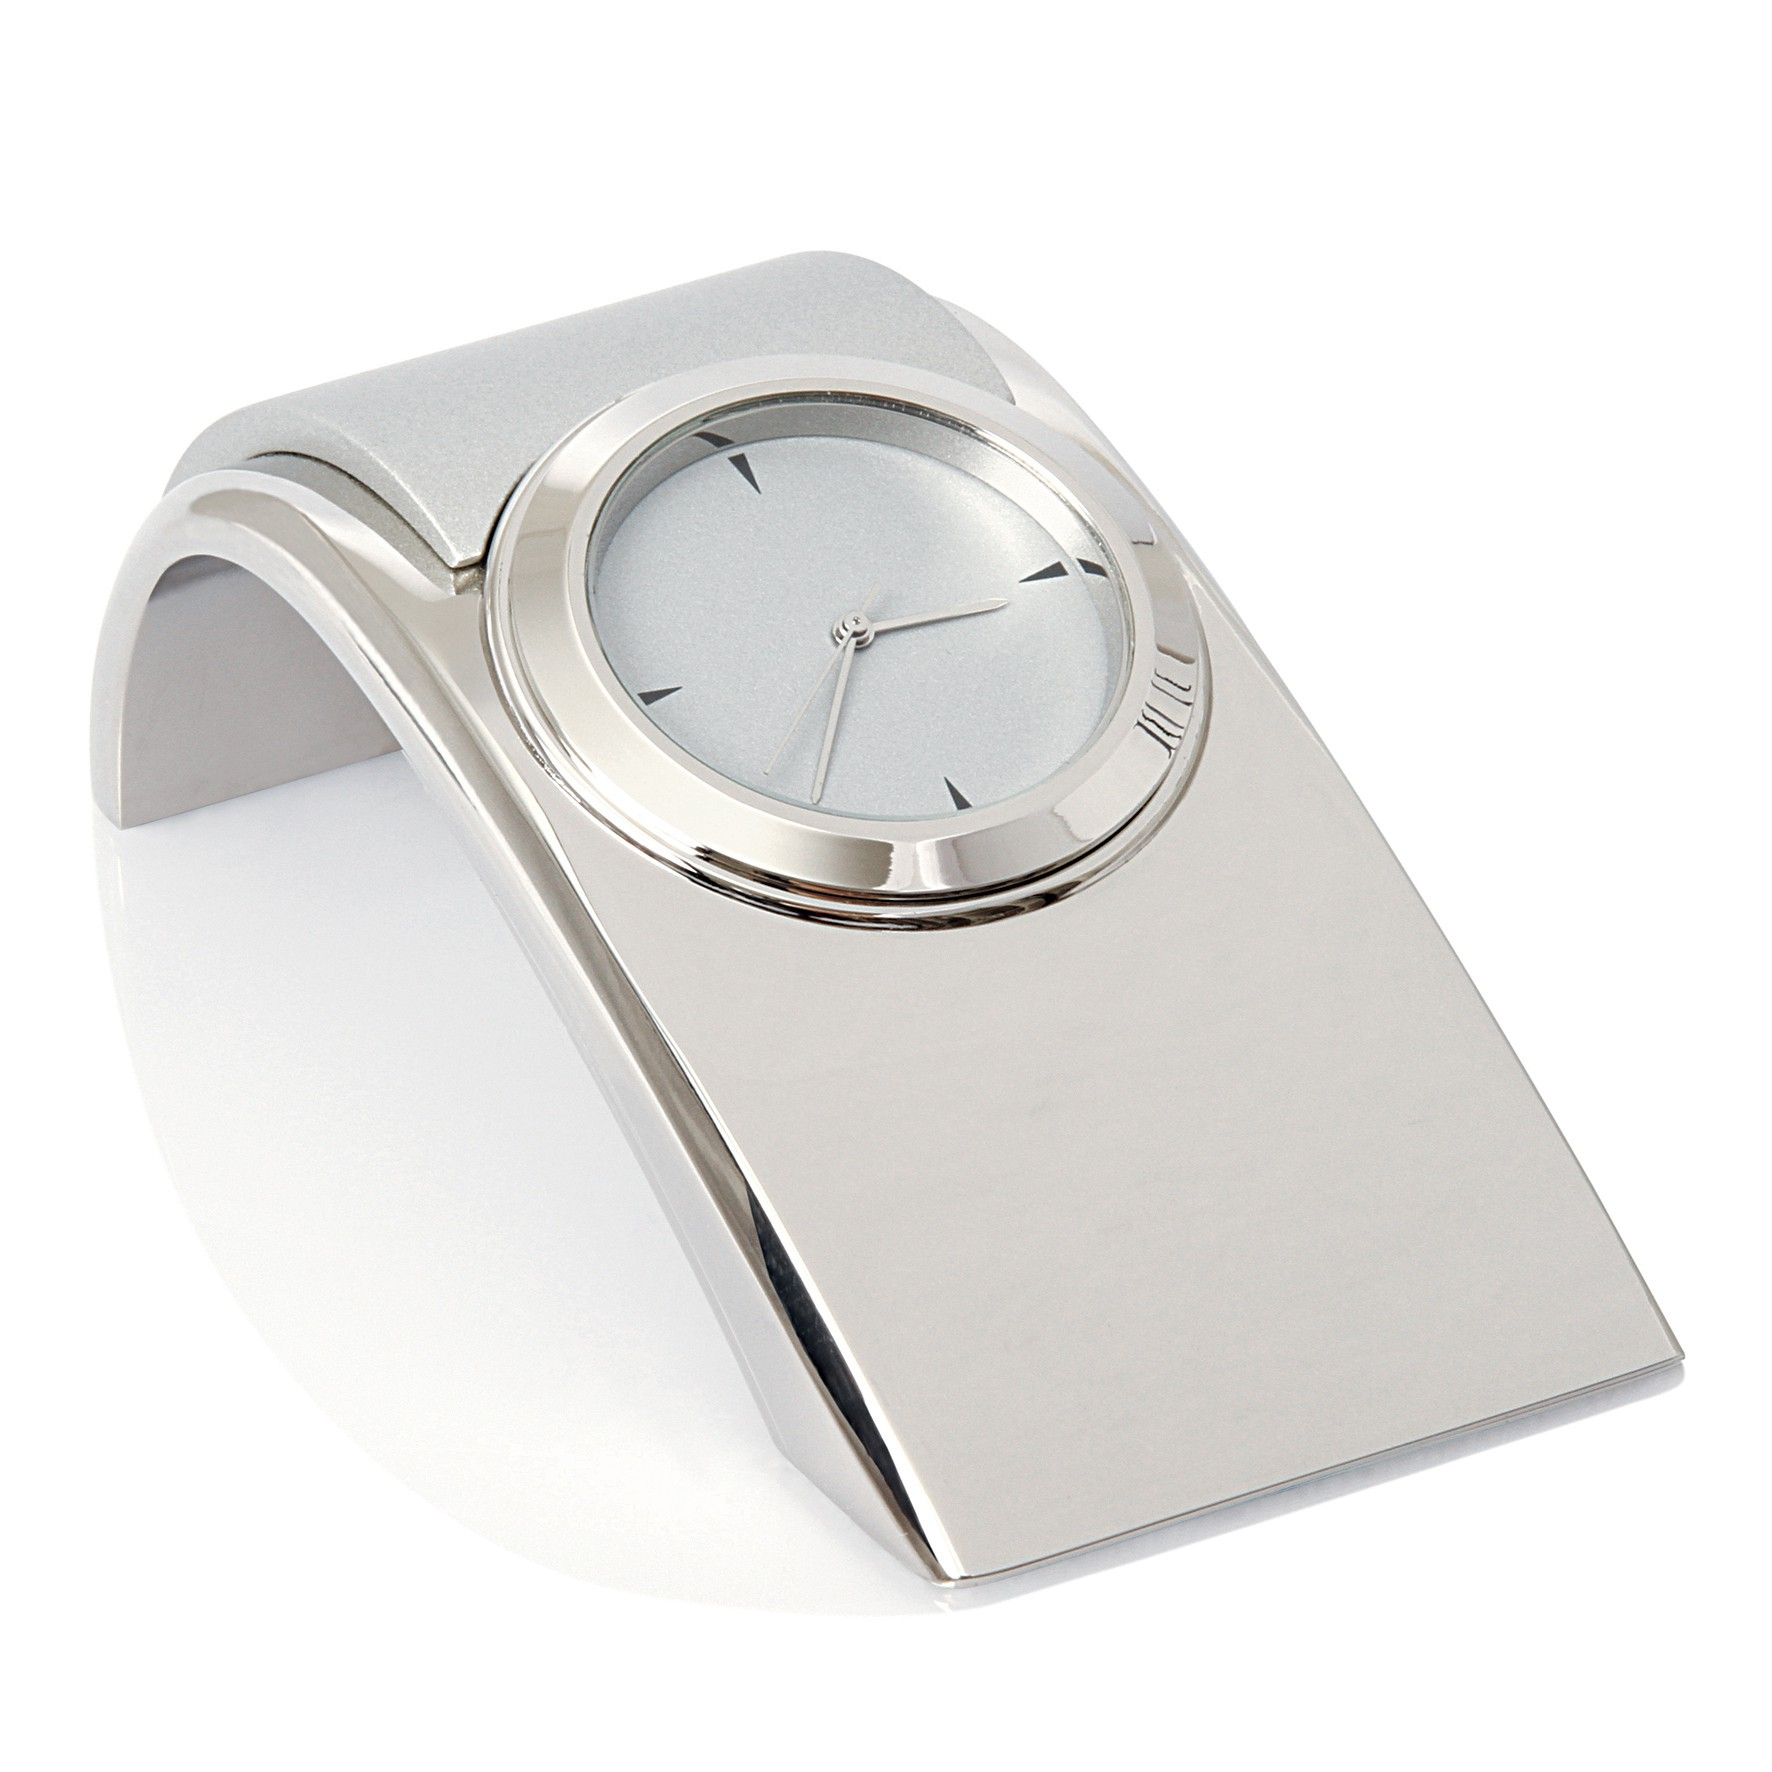 Elegance Desk Clock